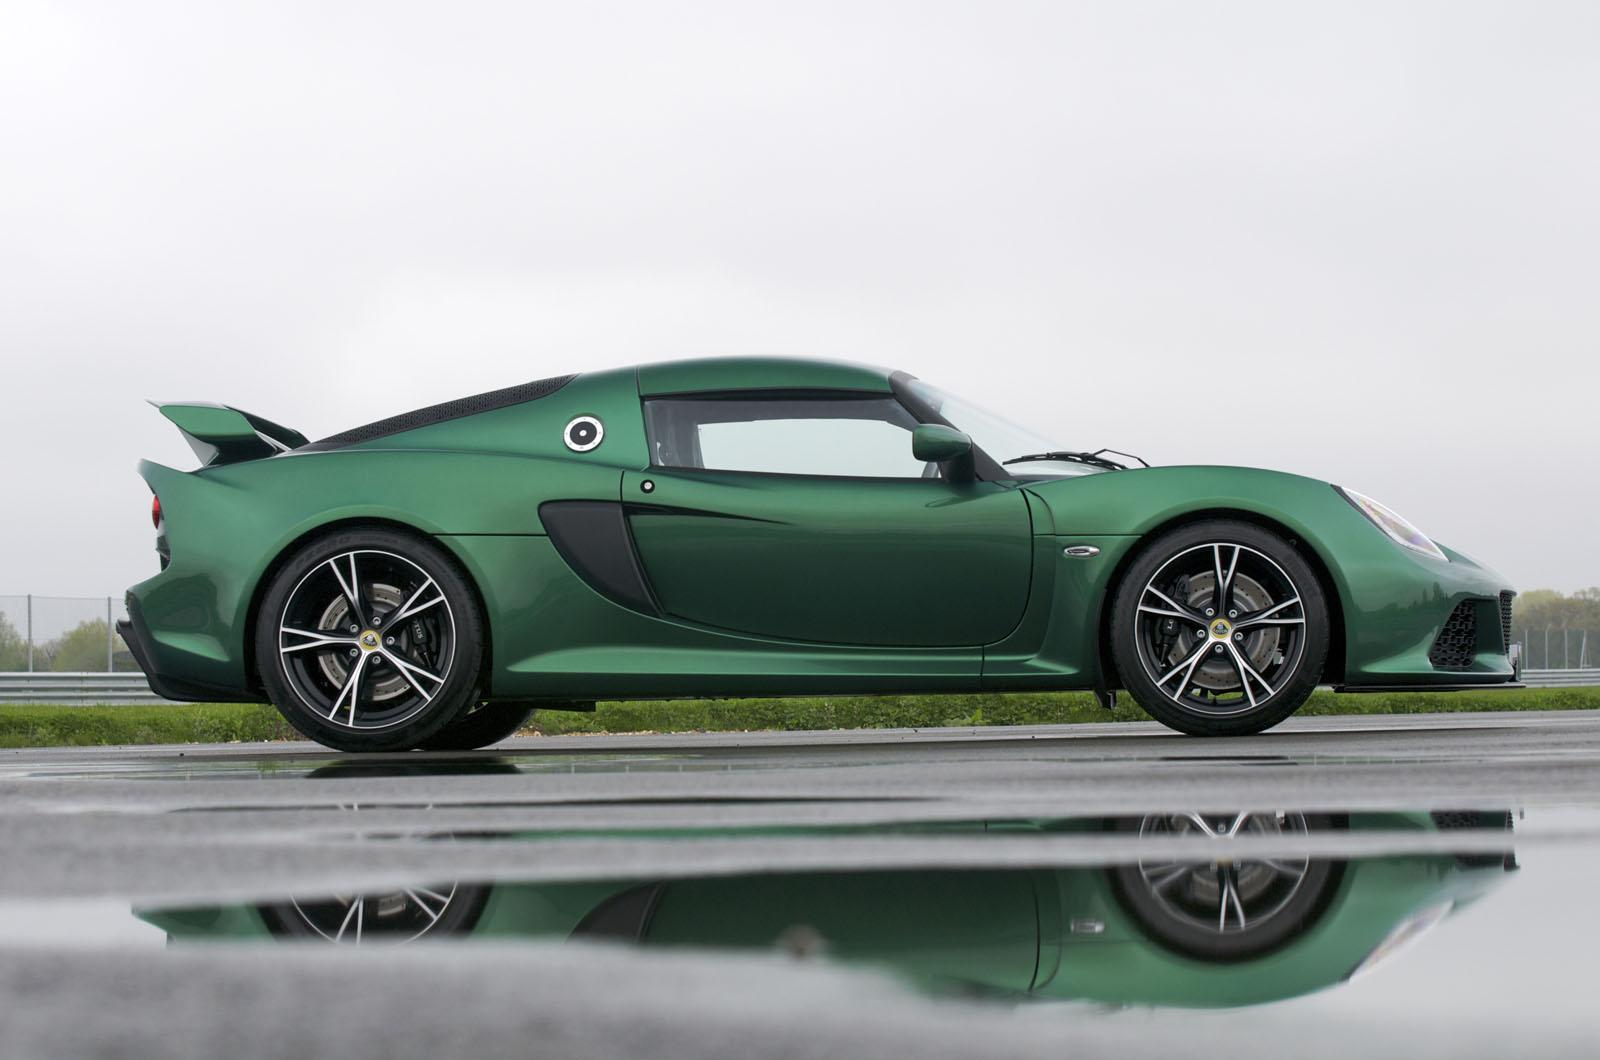 Ips Automatic Transmission Now Available For The Lotus